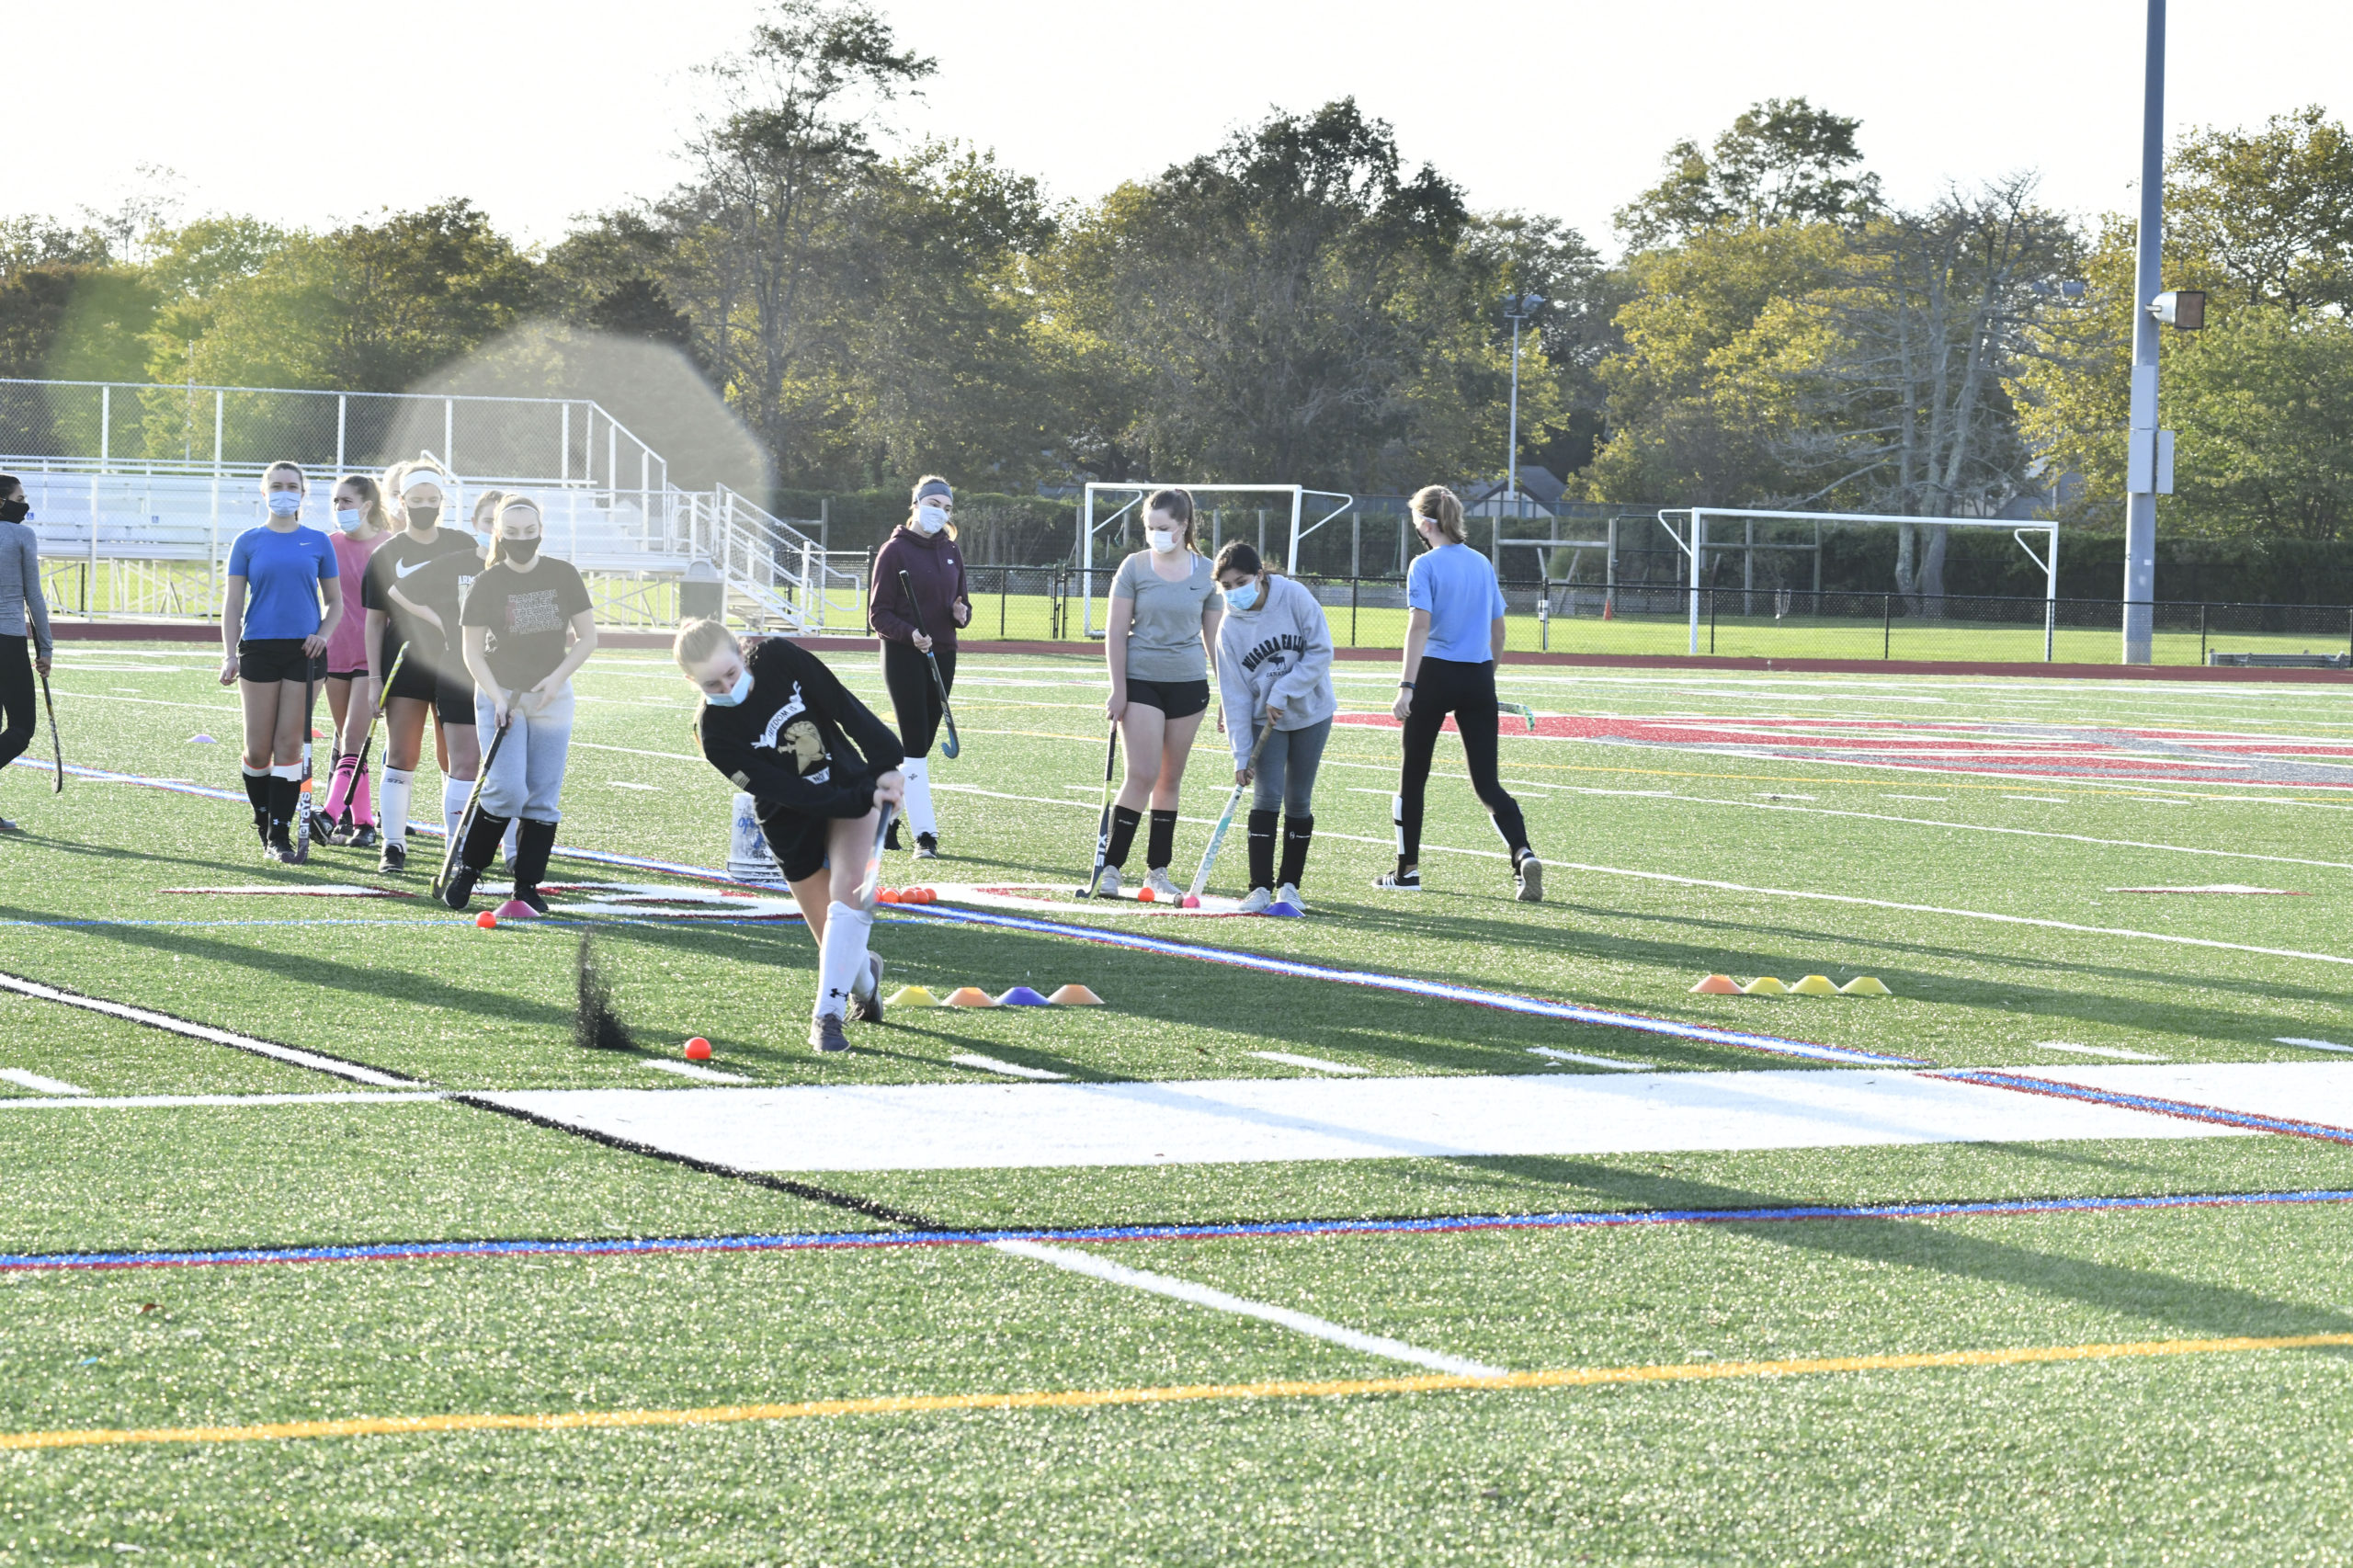 Intramural field hockey at Southampton High School.